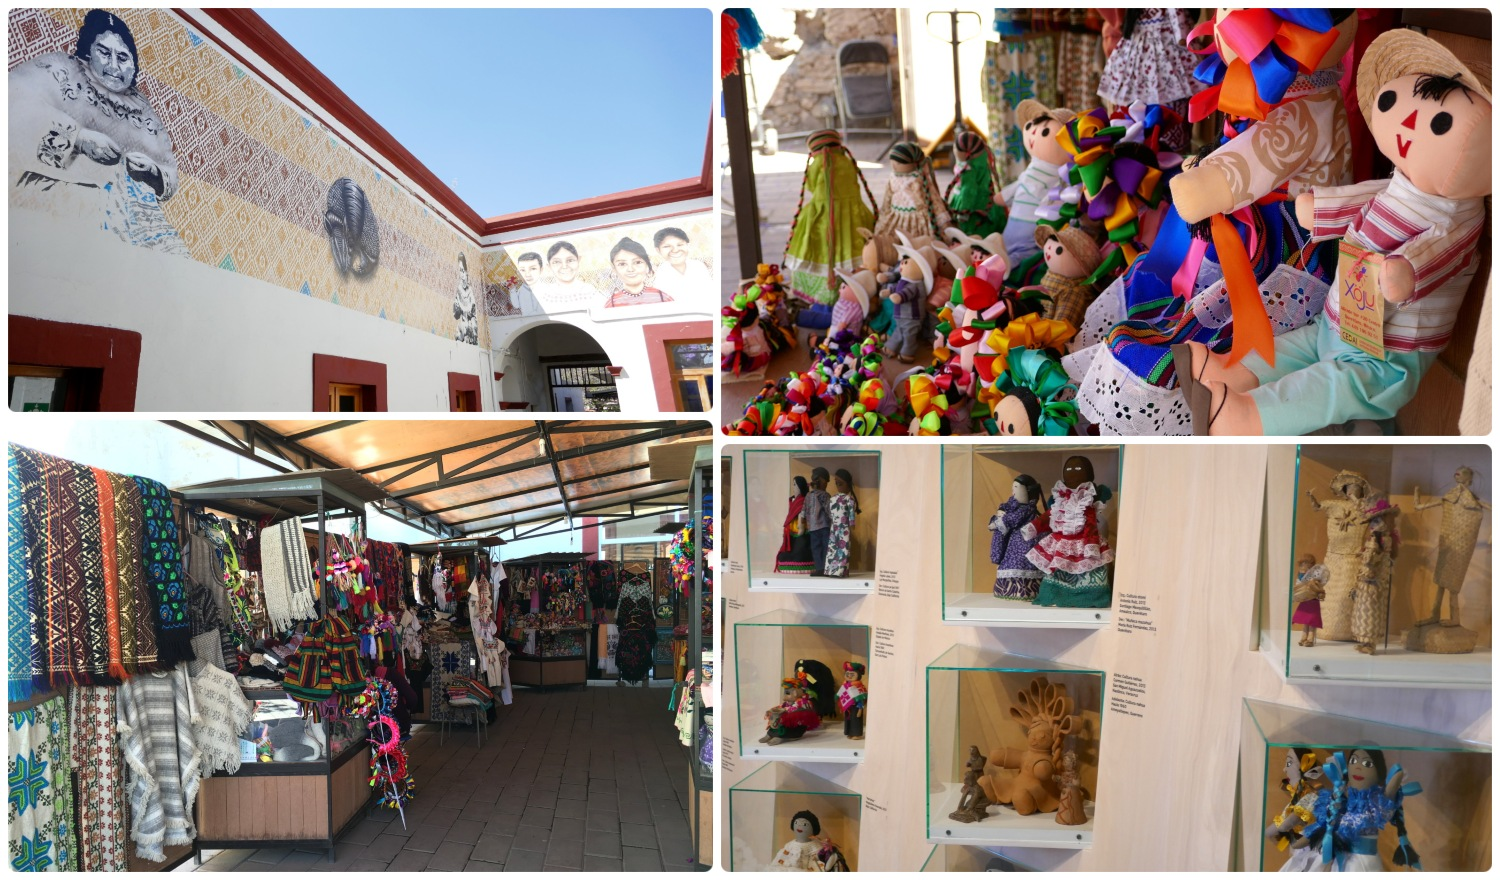 Centro de Desarrollo Artesanal Indigena (Indigenous Artisan Development Center) in Santiago de Queretaro, Mexico. There's a free museum and tons of booths full of handmade wonders to take home.